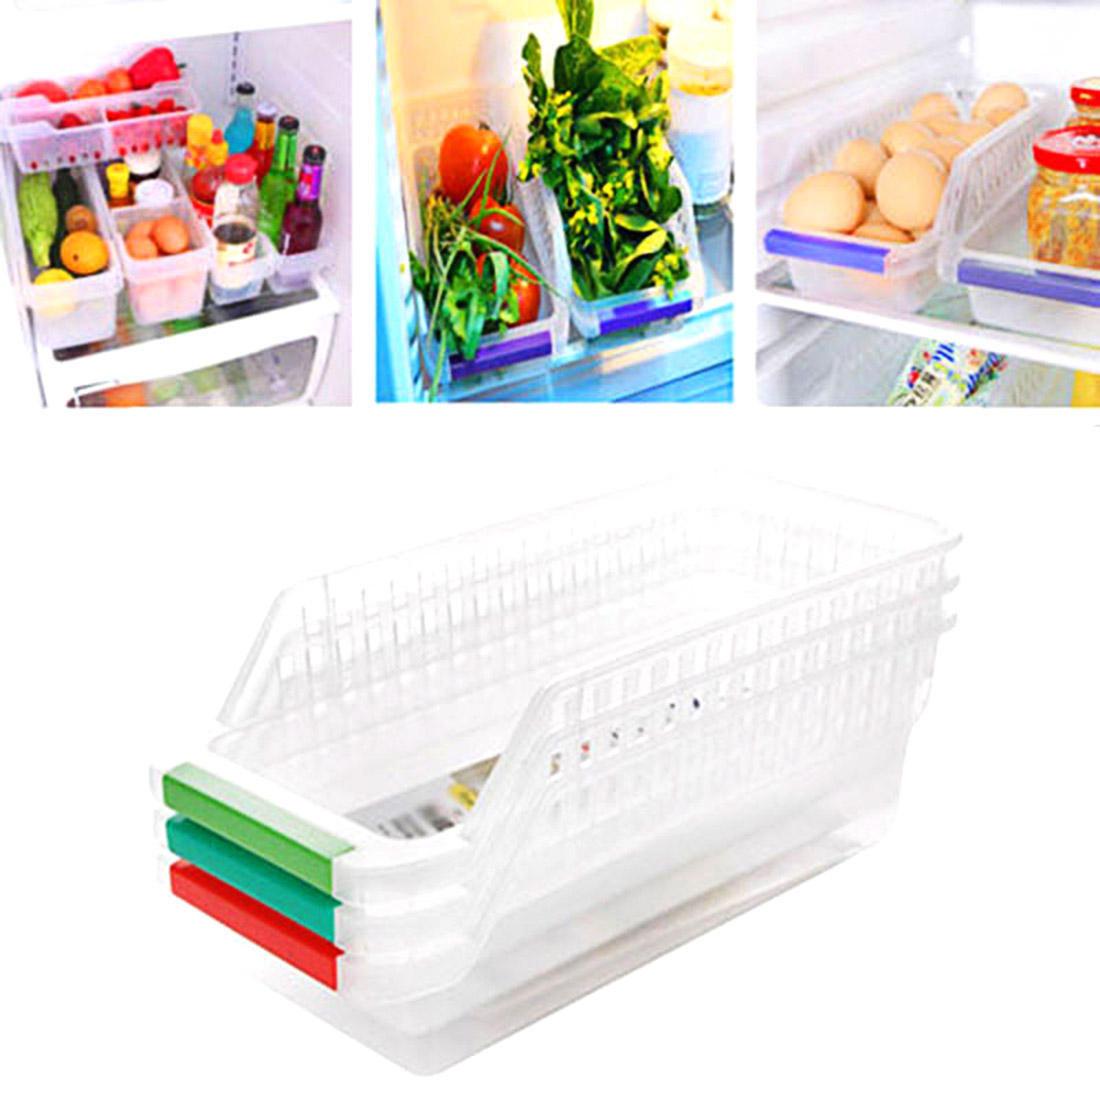 Big Sale 1Pcs Household Refrigerator Plastic Storage Box fresh spacer layer Container For The Kitchen Tool